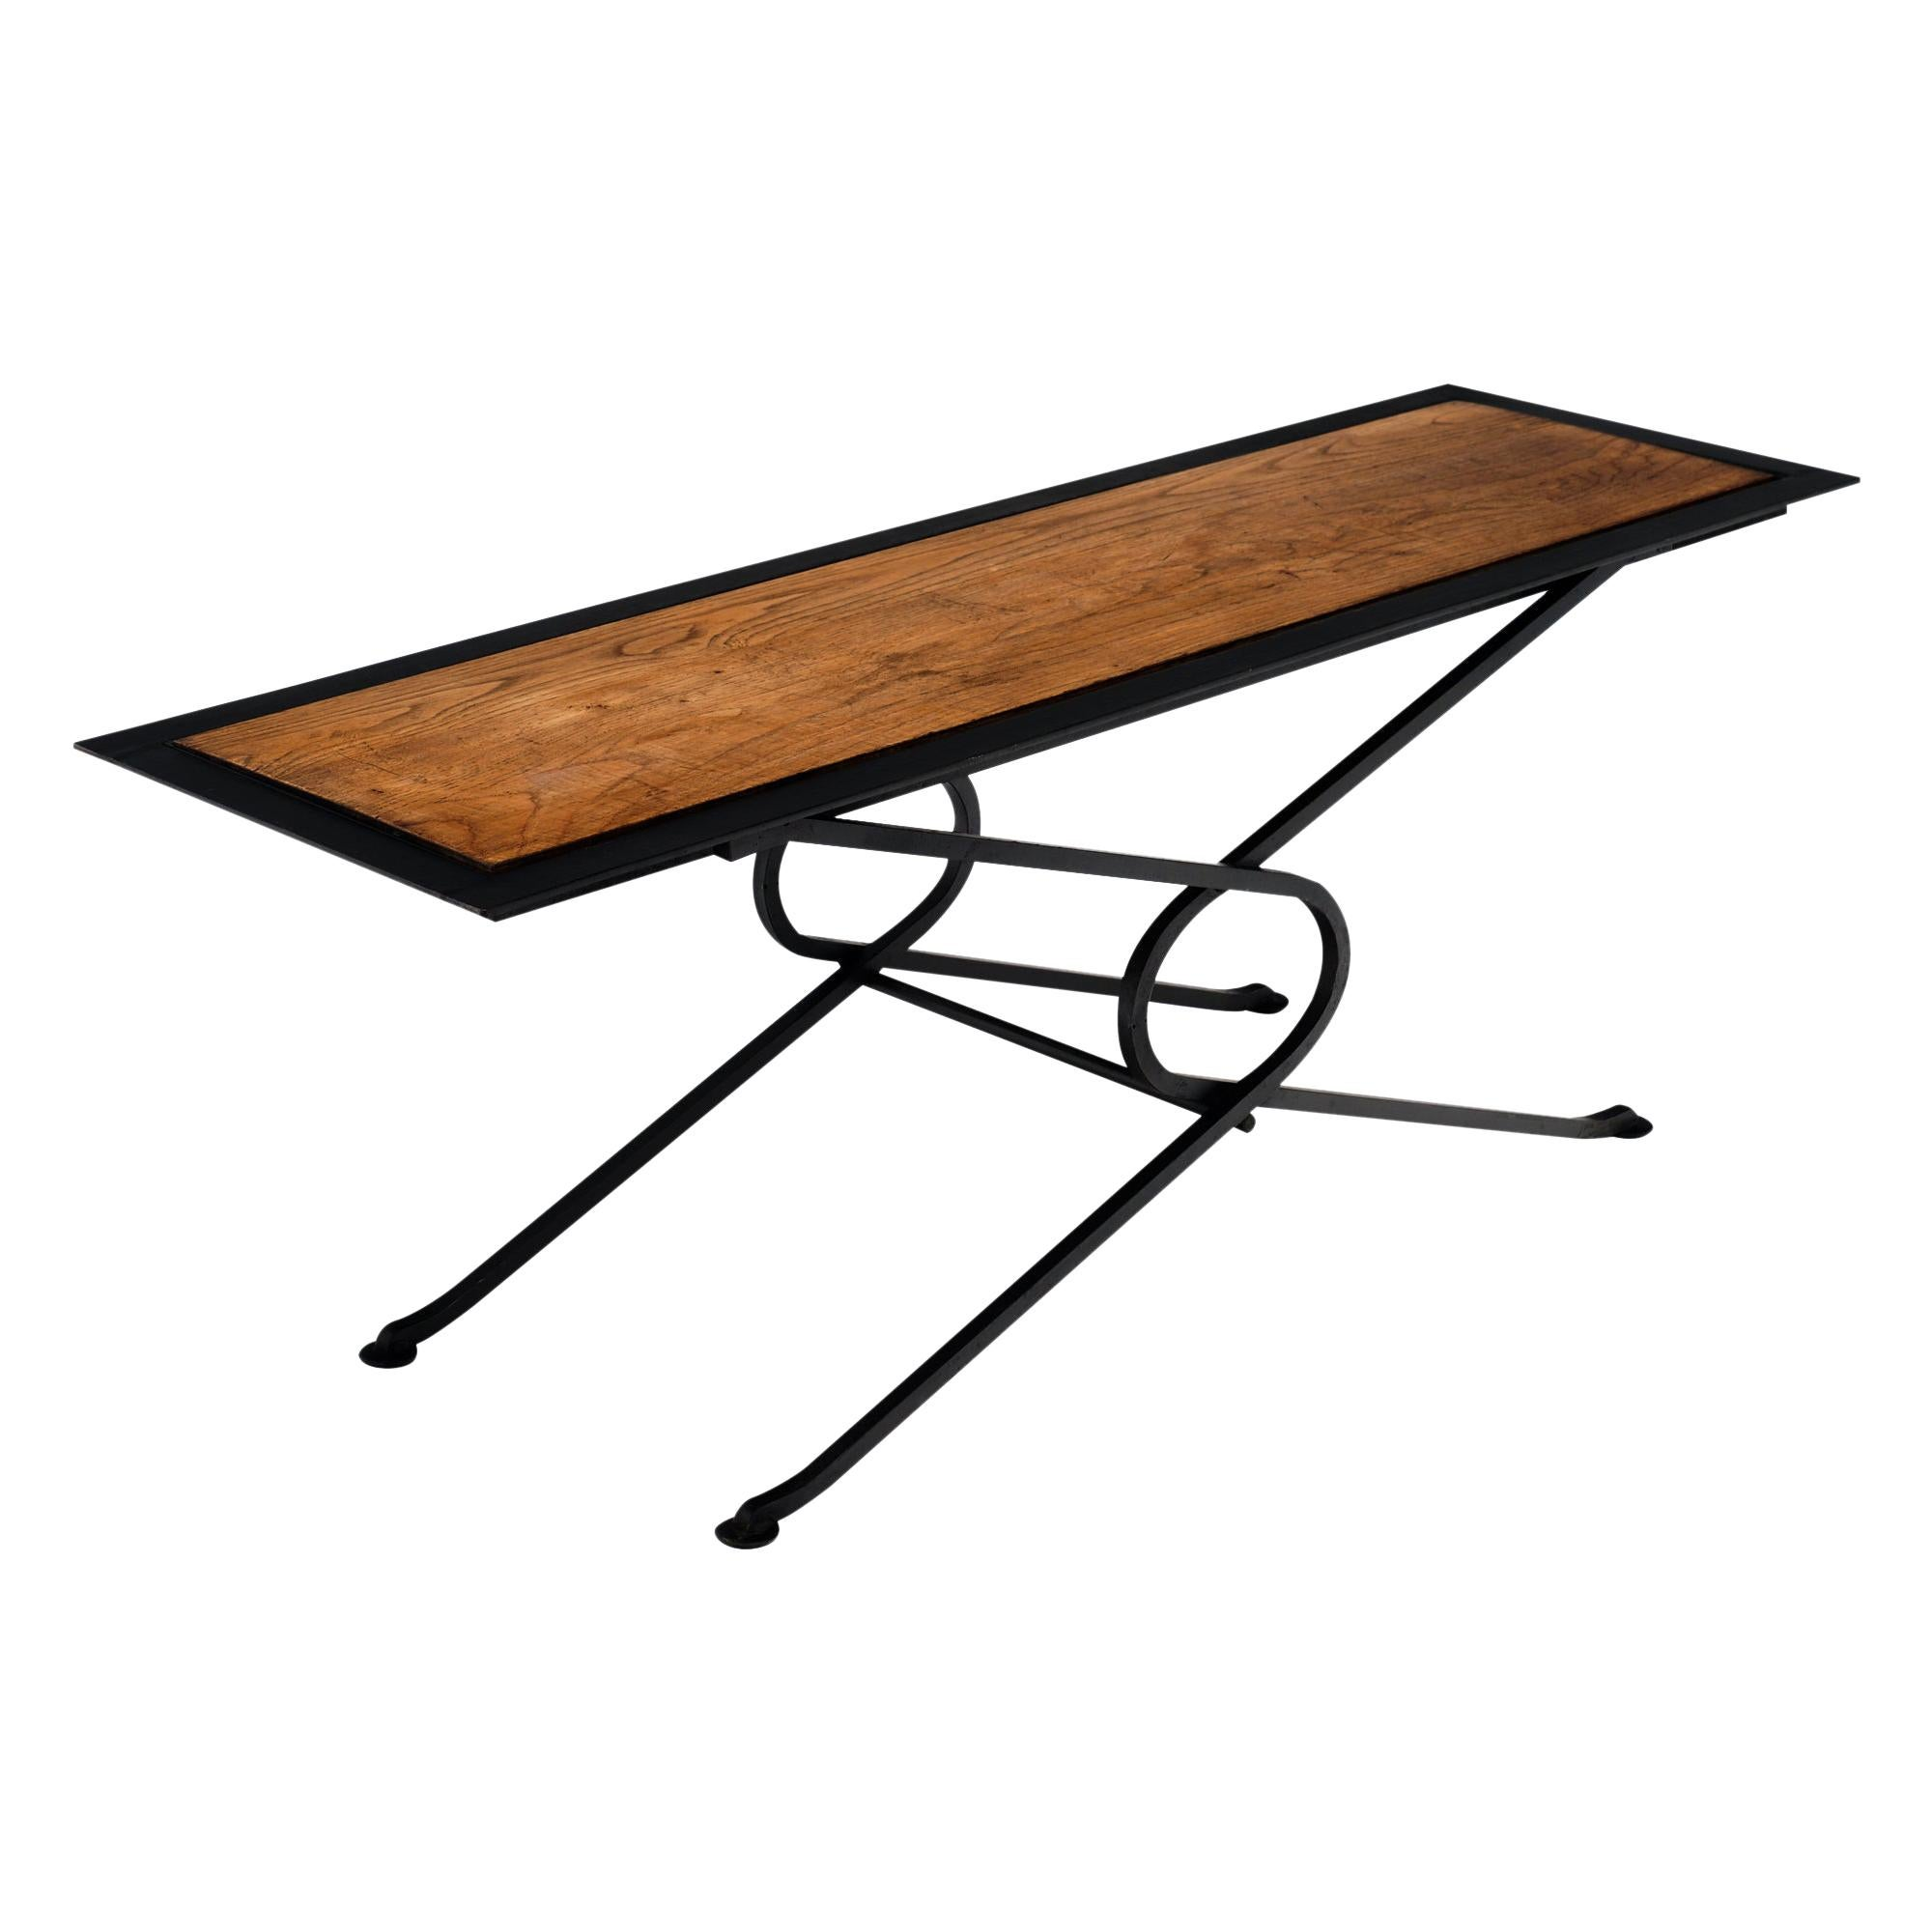 Oak and Forged Iron Coffee or Side Table